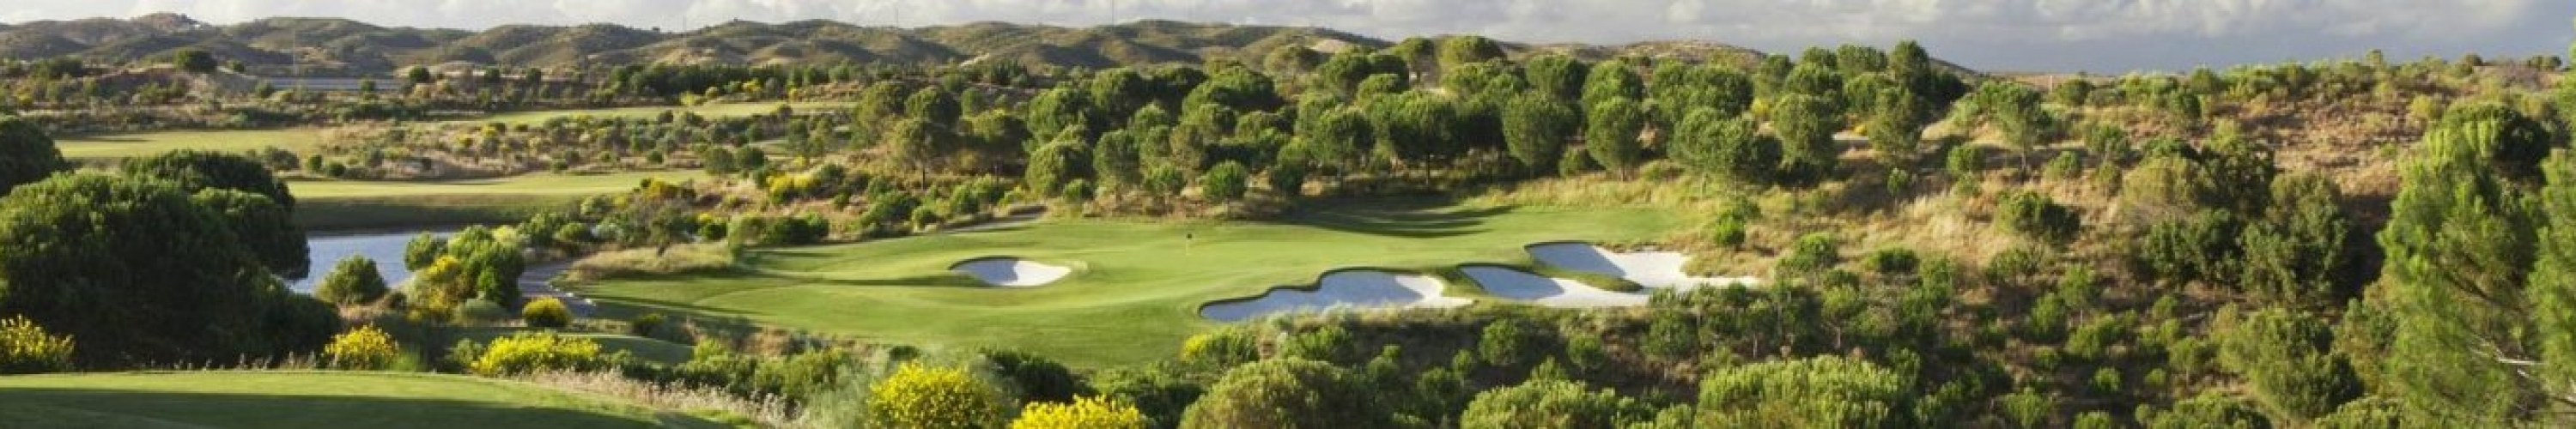 golf Andalusië